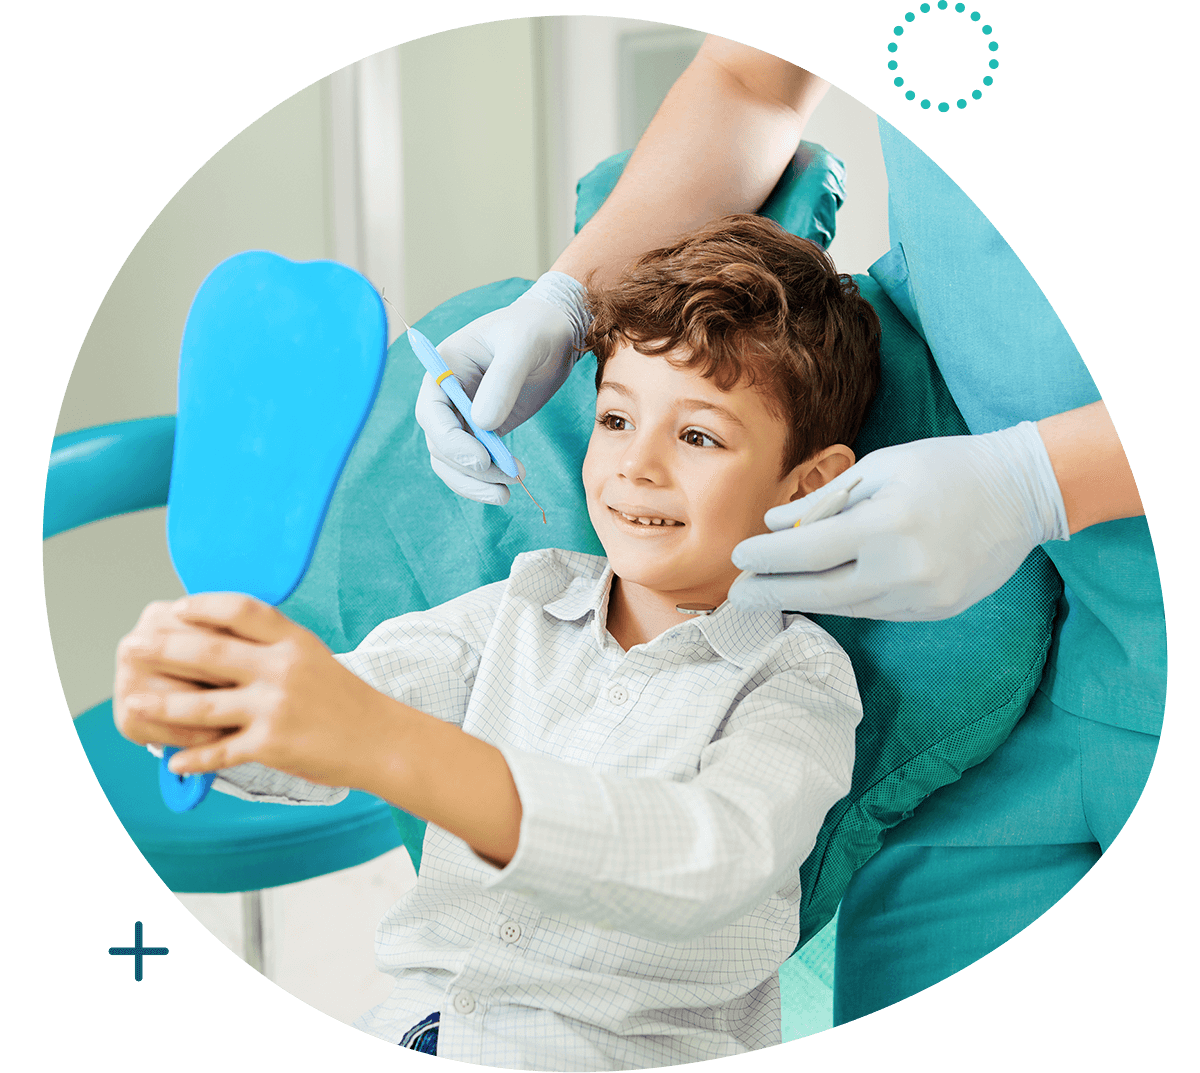 http://lakeshoredentistry.ca/wp-content/uploads/2021/02/home-service-4-min.png